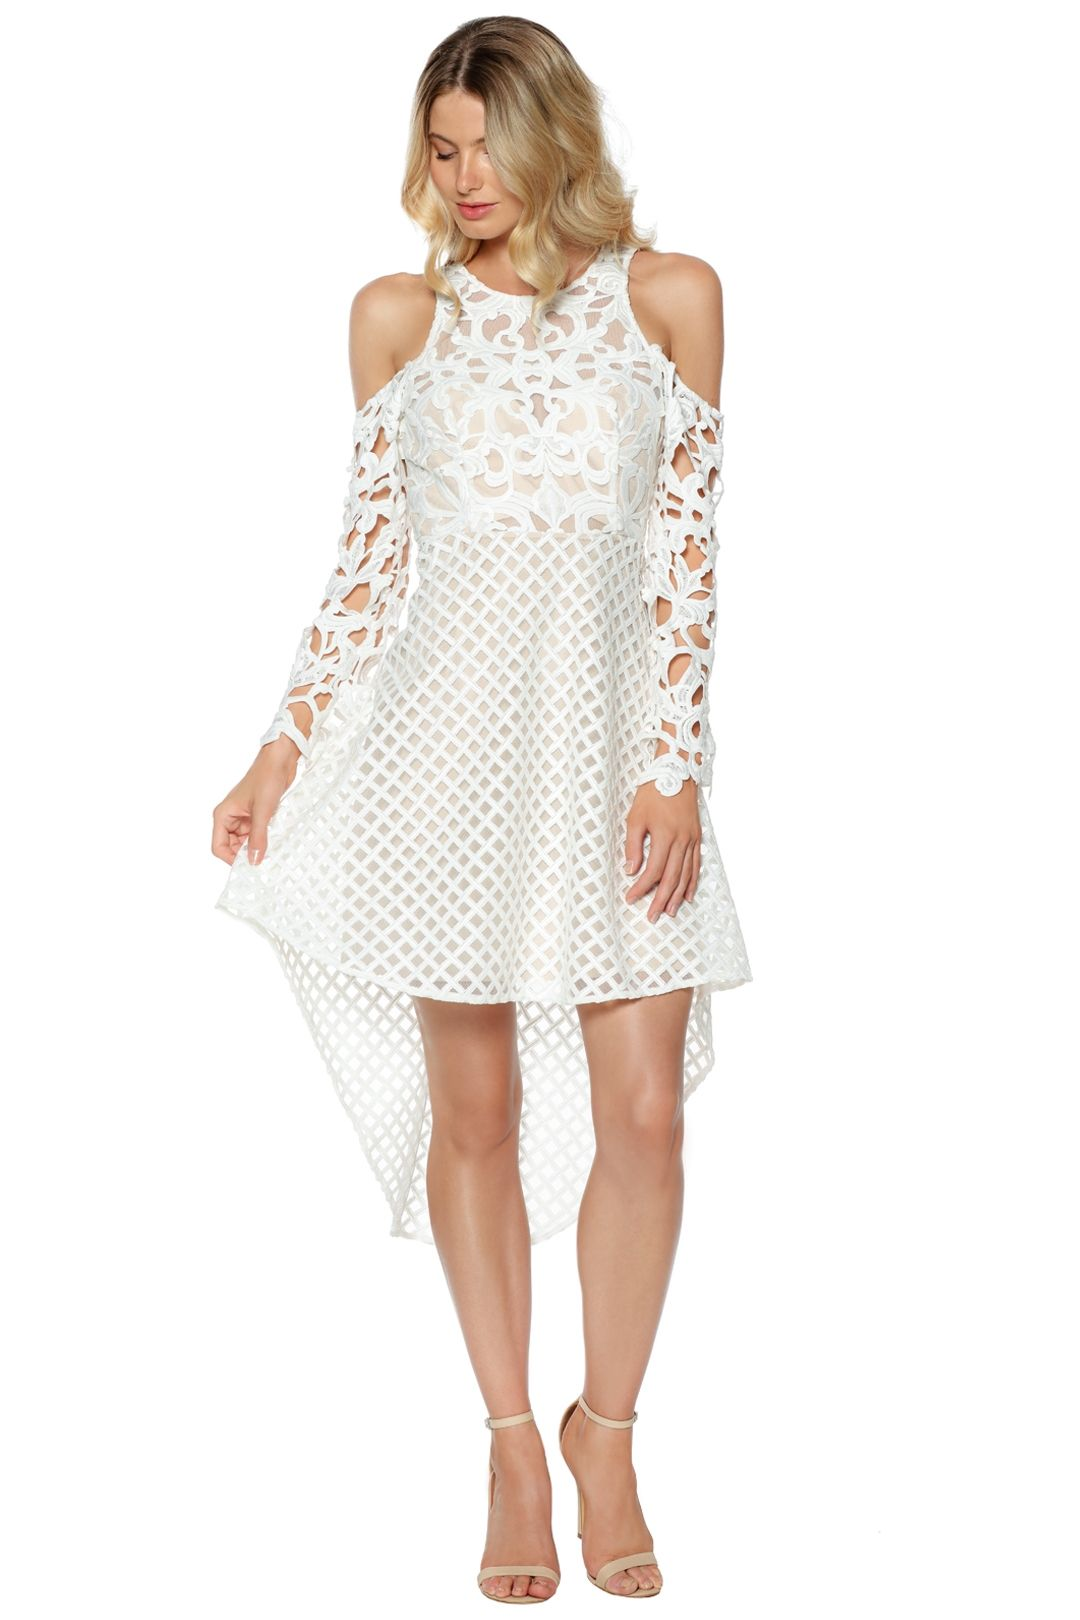 Thurley - Trulli Dress - White - Front